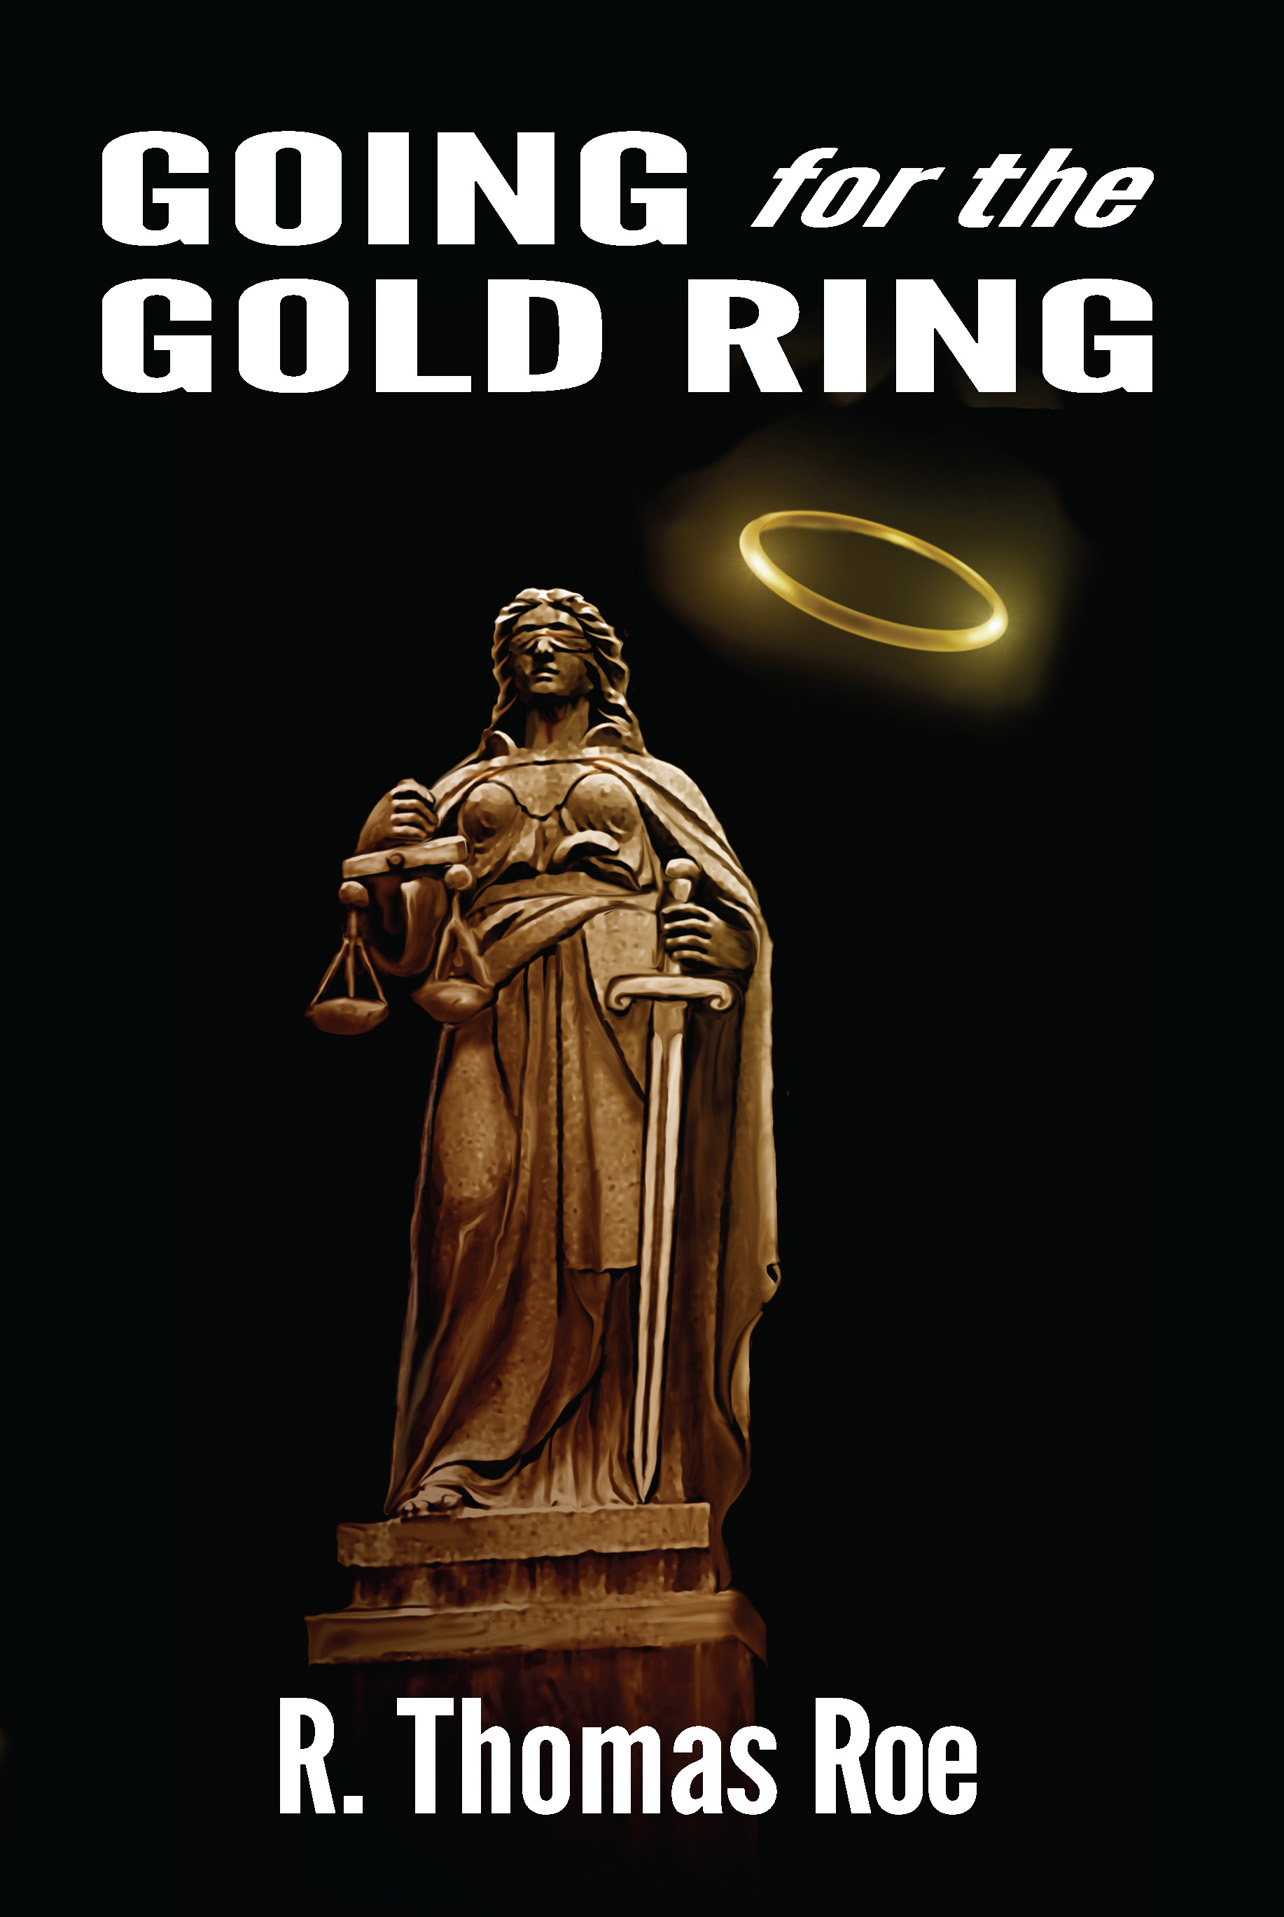 Going for the Gold Ring